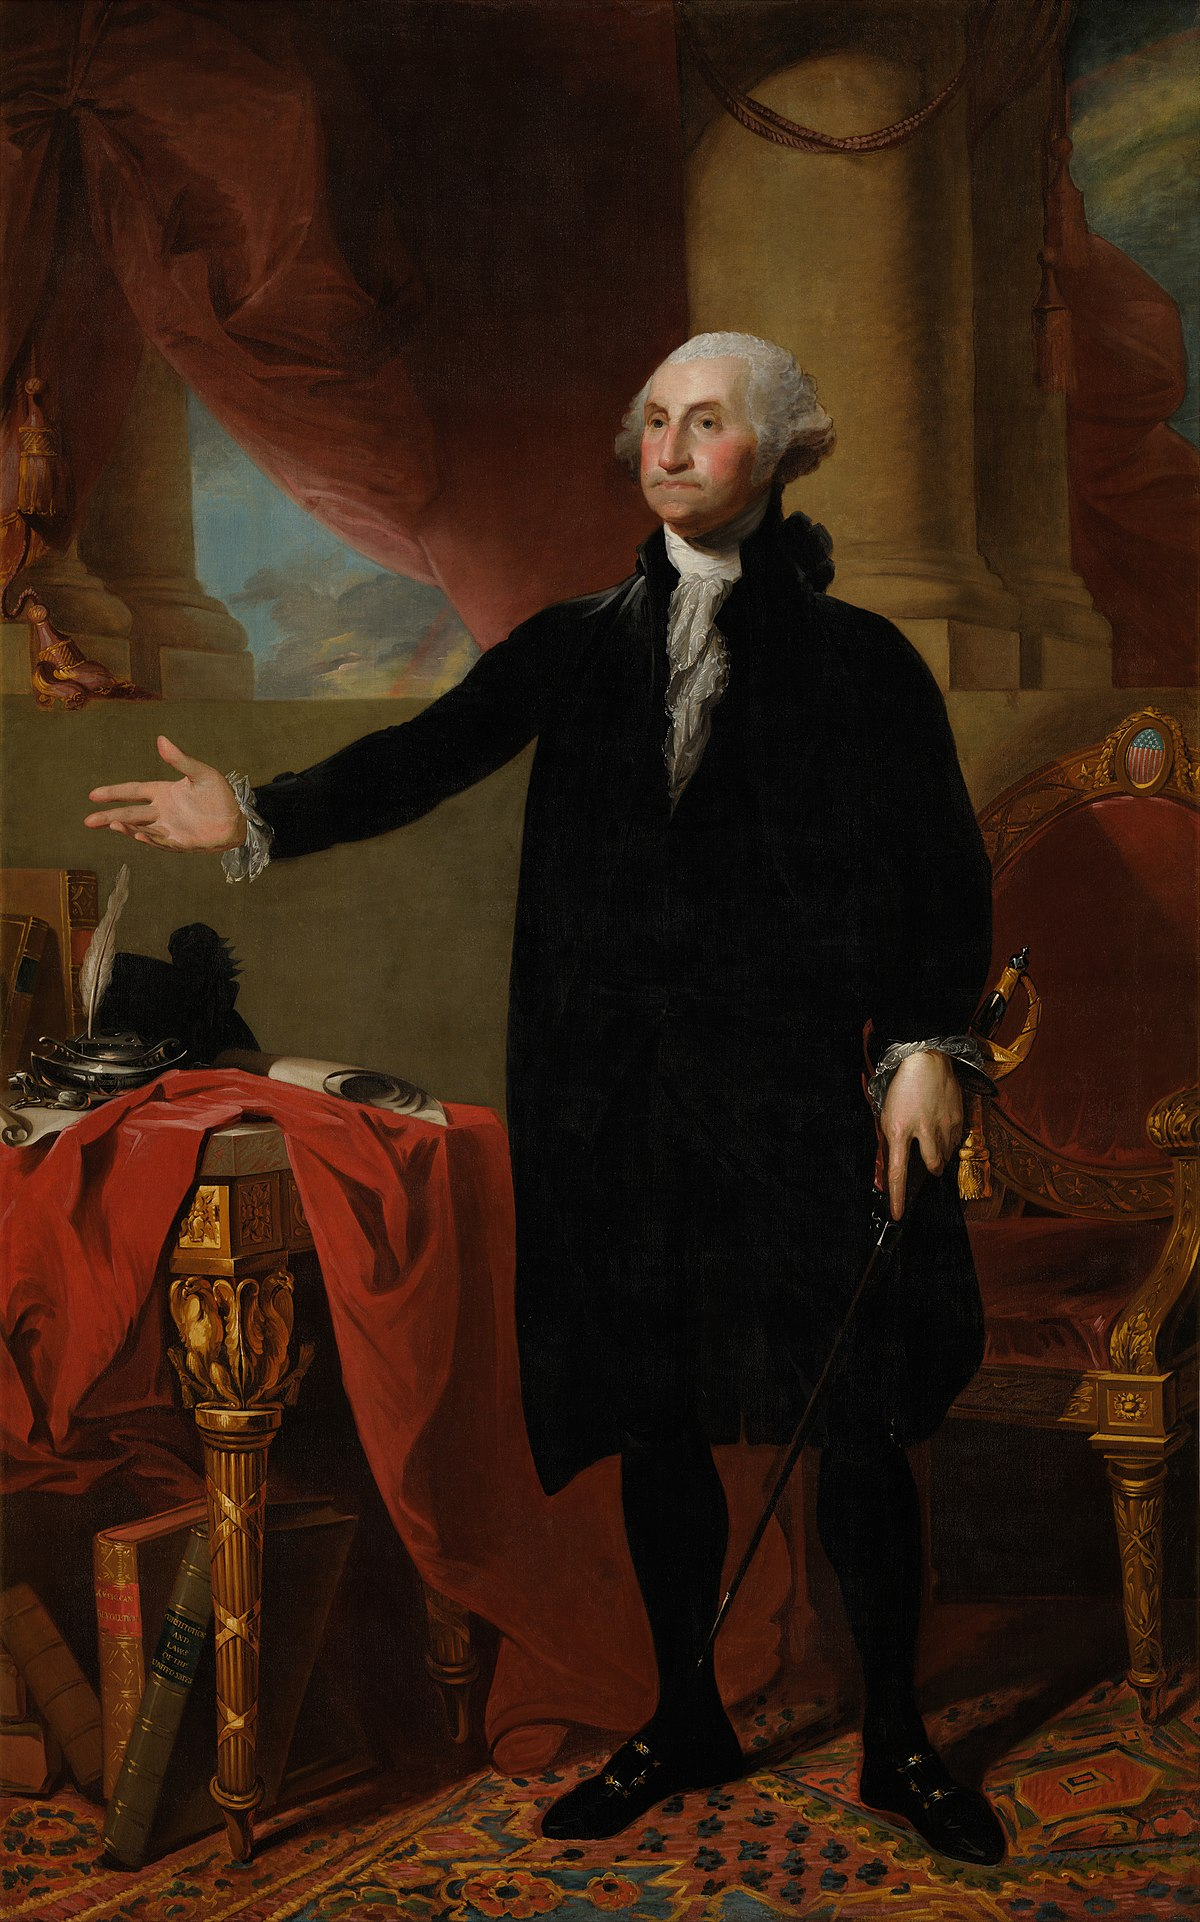 Gilbert Stuart,  George Washington (Lansdowne portrait of George Washington) , 1796. This is the portrait Dolley Madison saved from the White House in 1814.